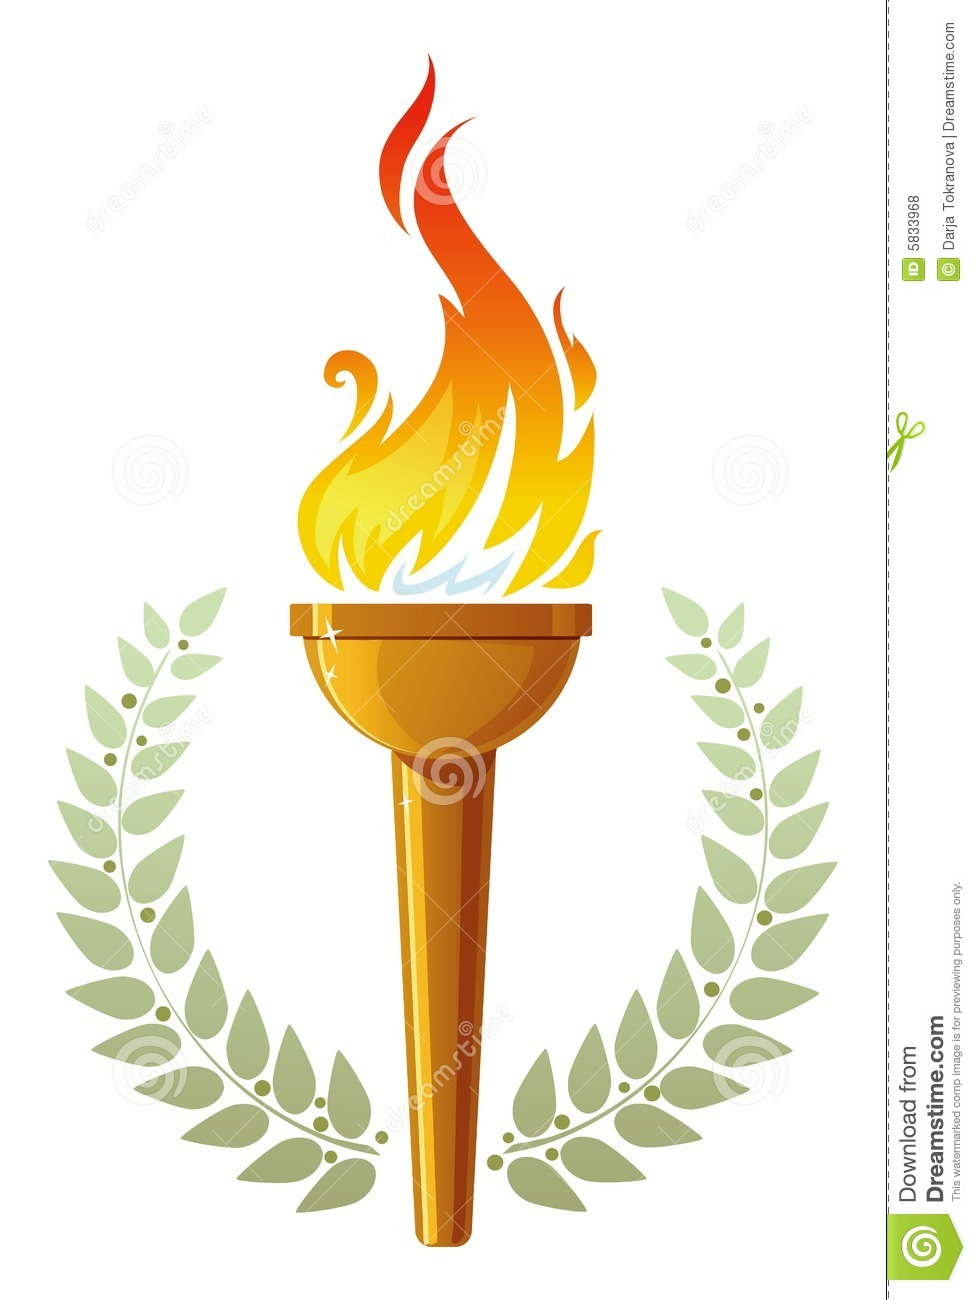 Flaming Torch Royalty Free Stock Photos - Image: 5833968